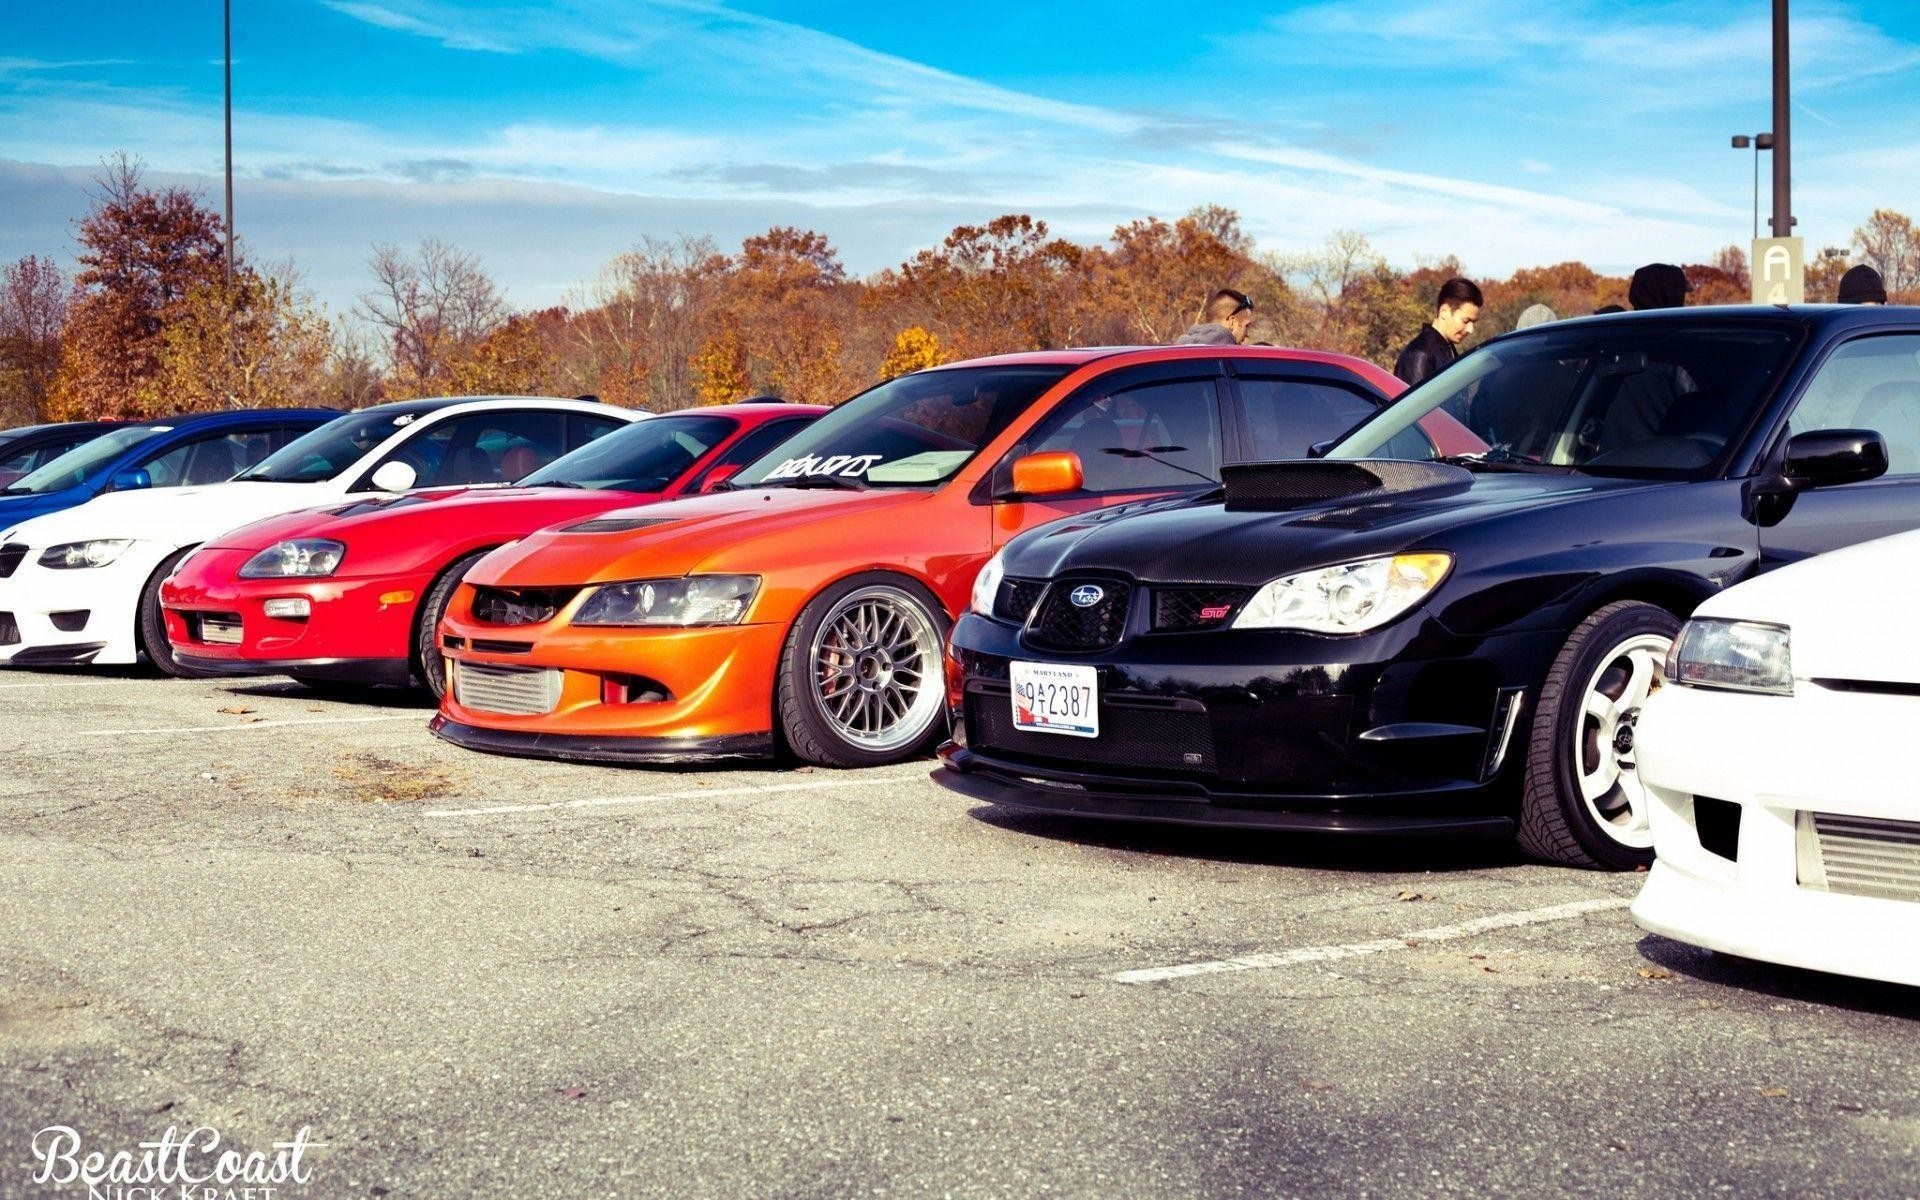 1920x1080 Tuned Cars Wallpapers Inspirational Jdm Background Hd Car  Wallpaper